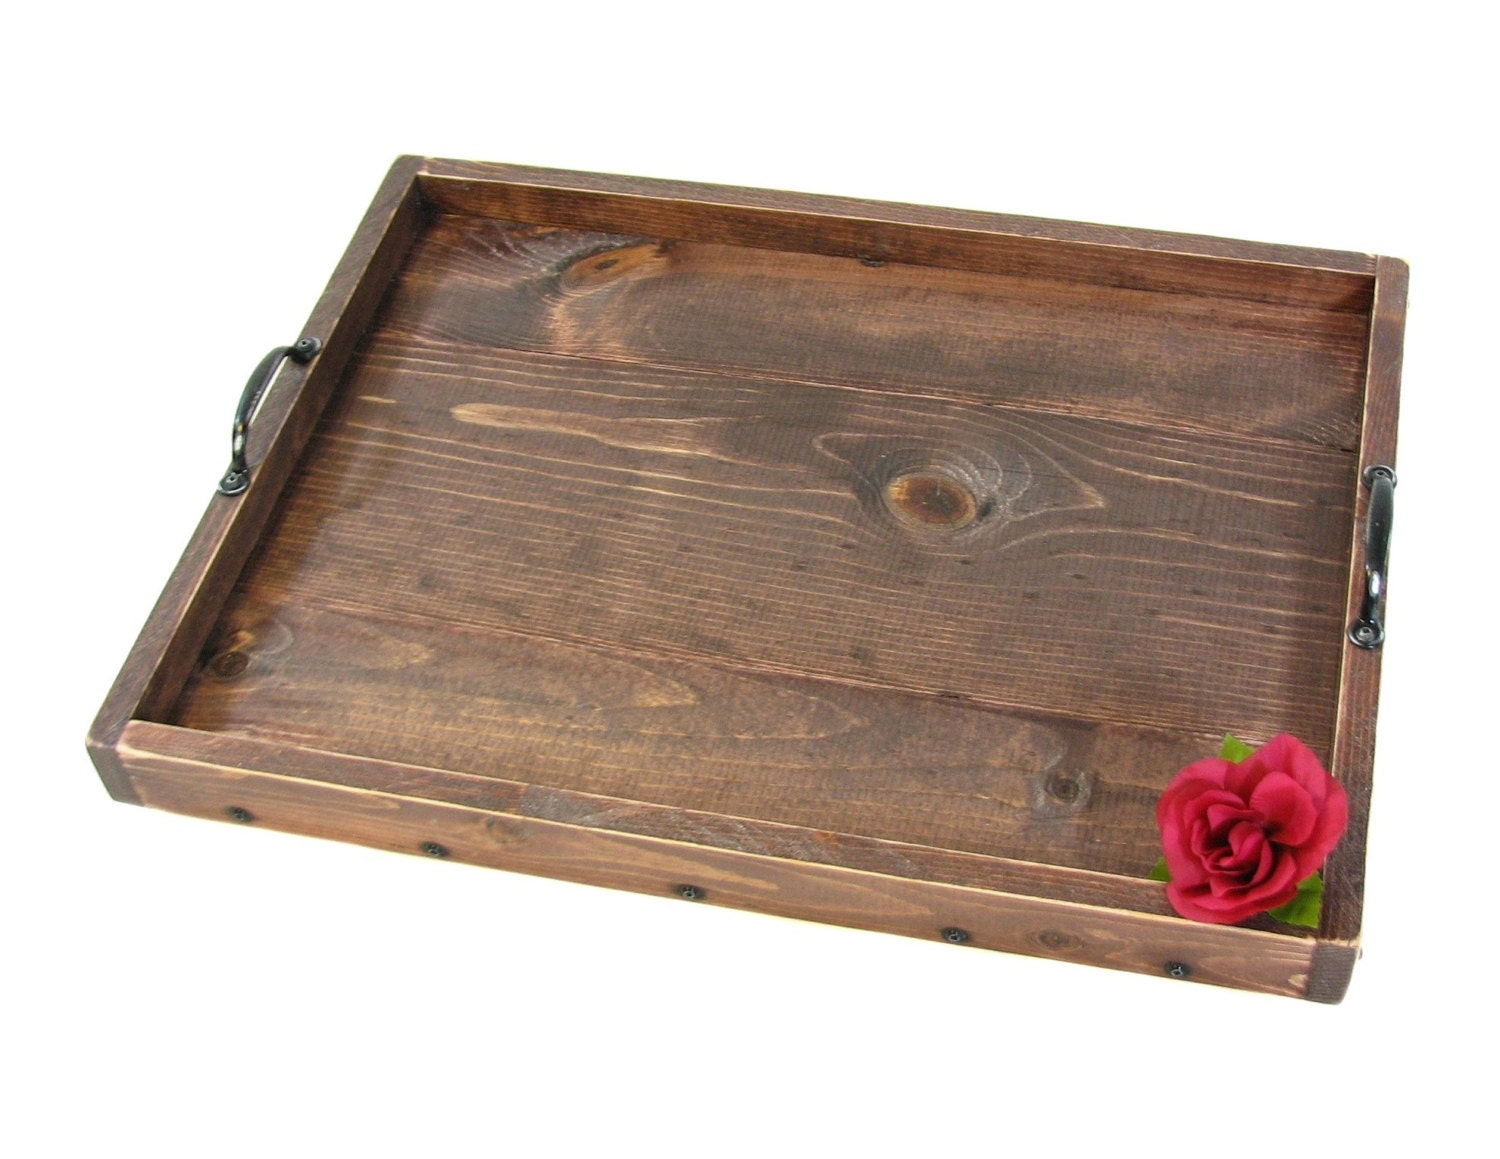 Ottoman tray wooden serving decorative by bridgewoodplace